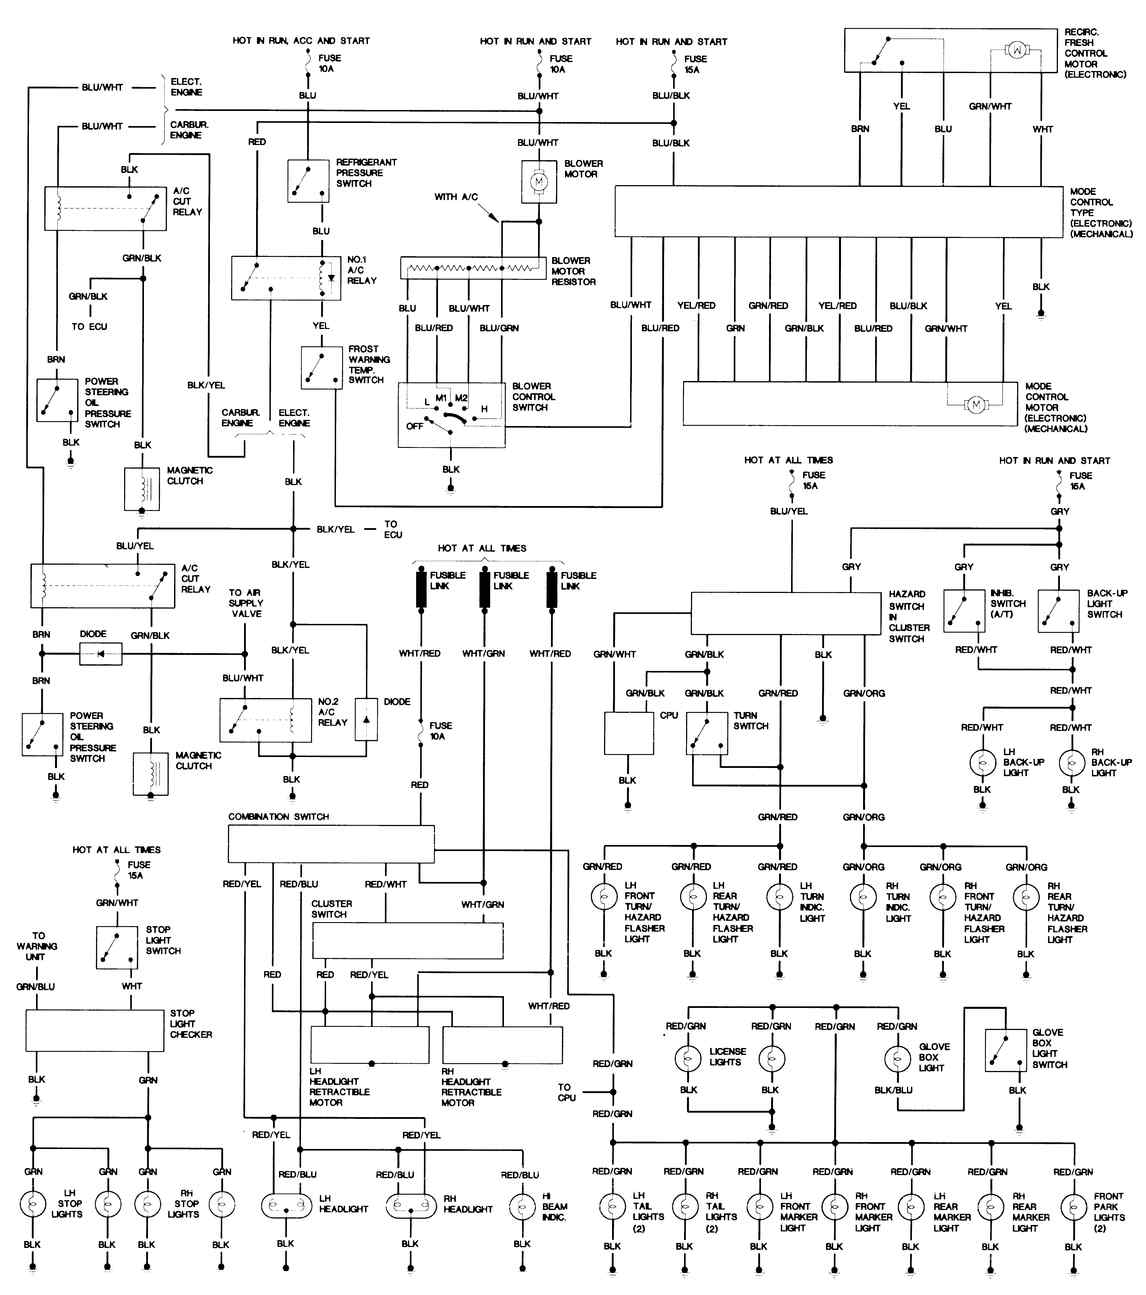 Rx wiring diagram printable wiring diagram database 1984 mazda rx7 wiring 1984 home wiring diagrams source